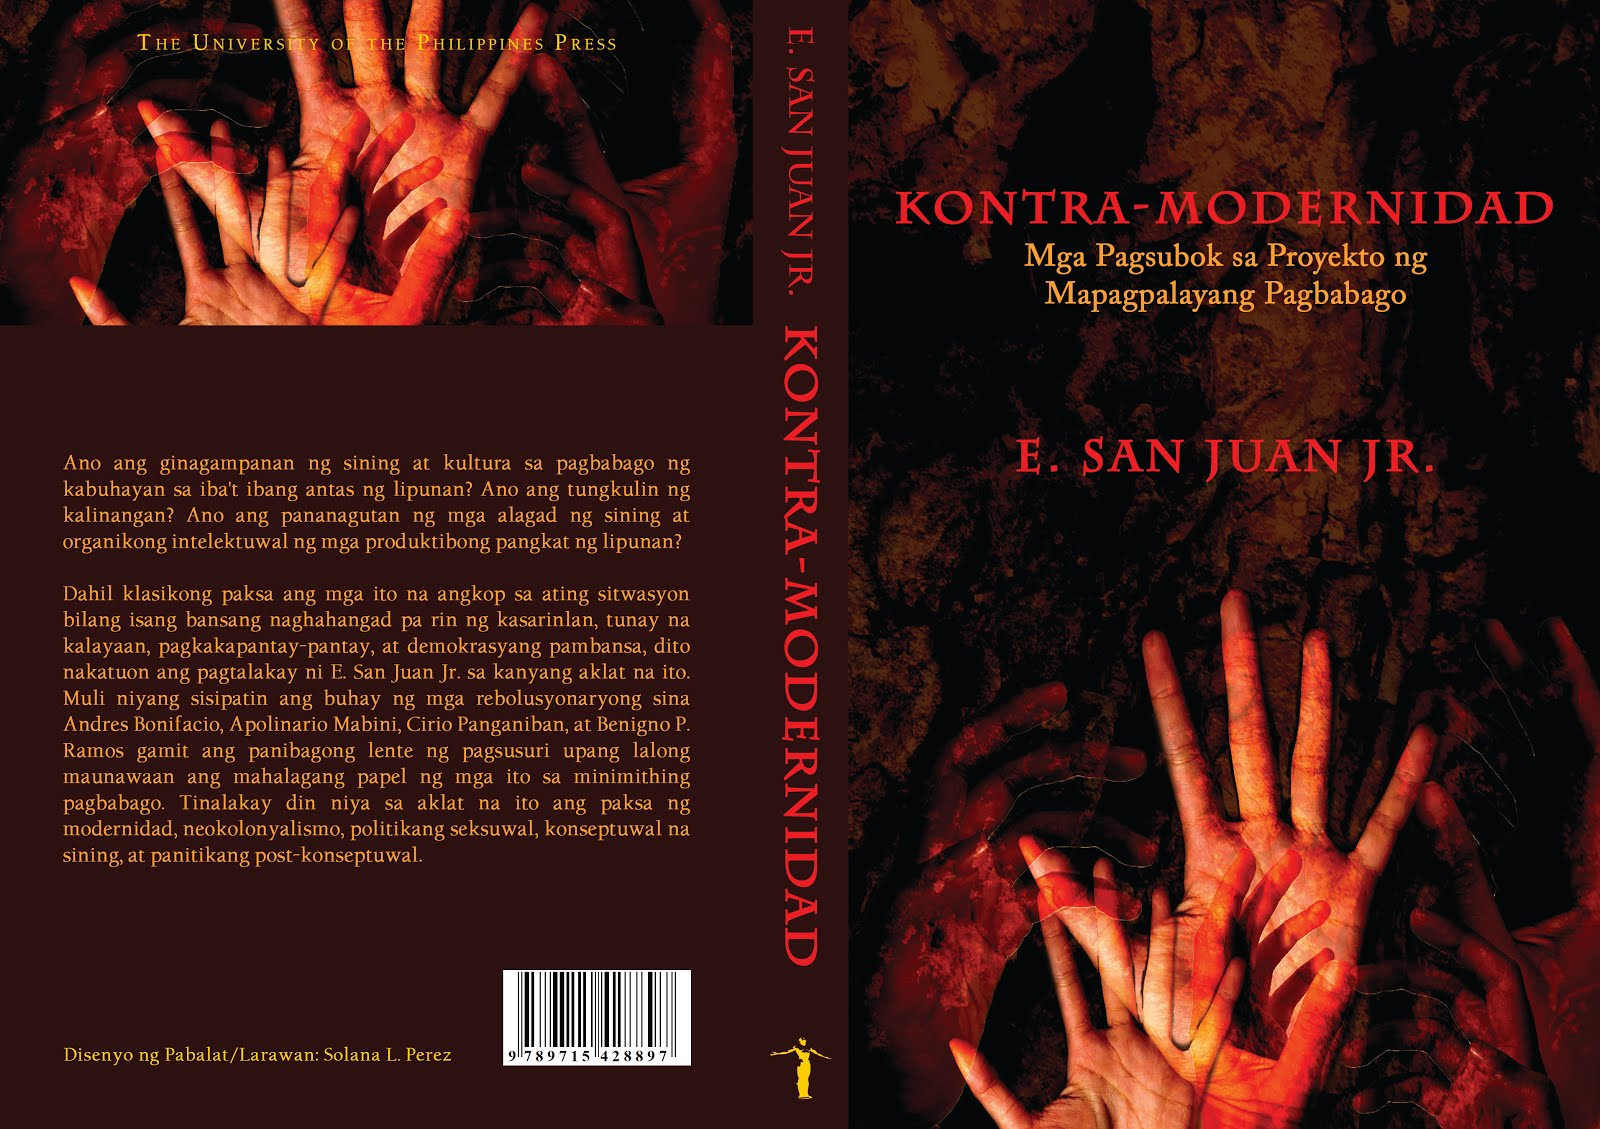 KONTRA-MODERNIDAD (University of the Philippines Press)